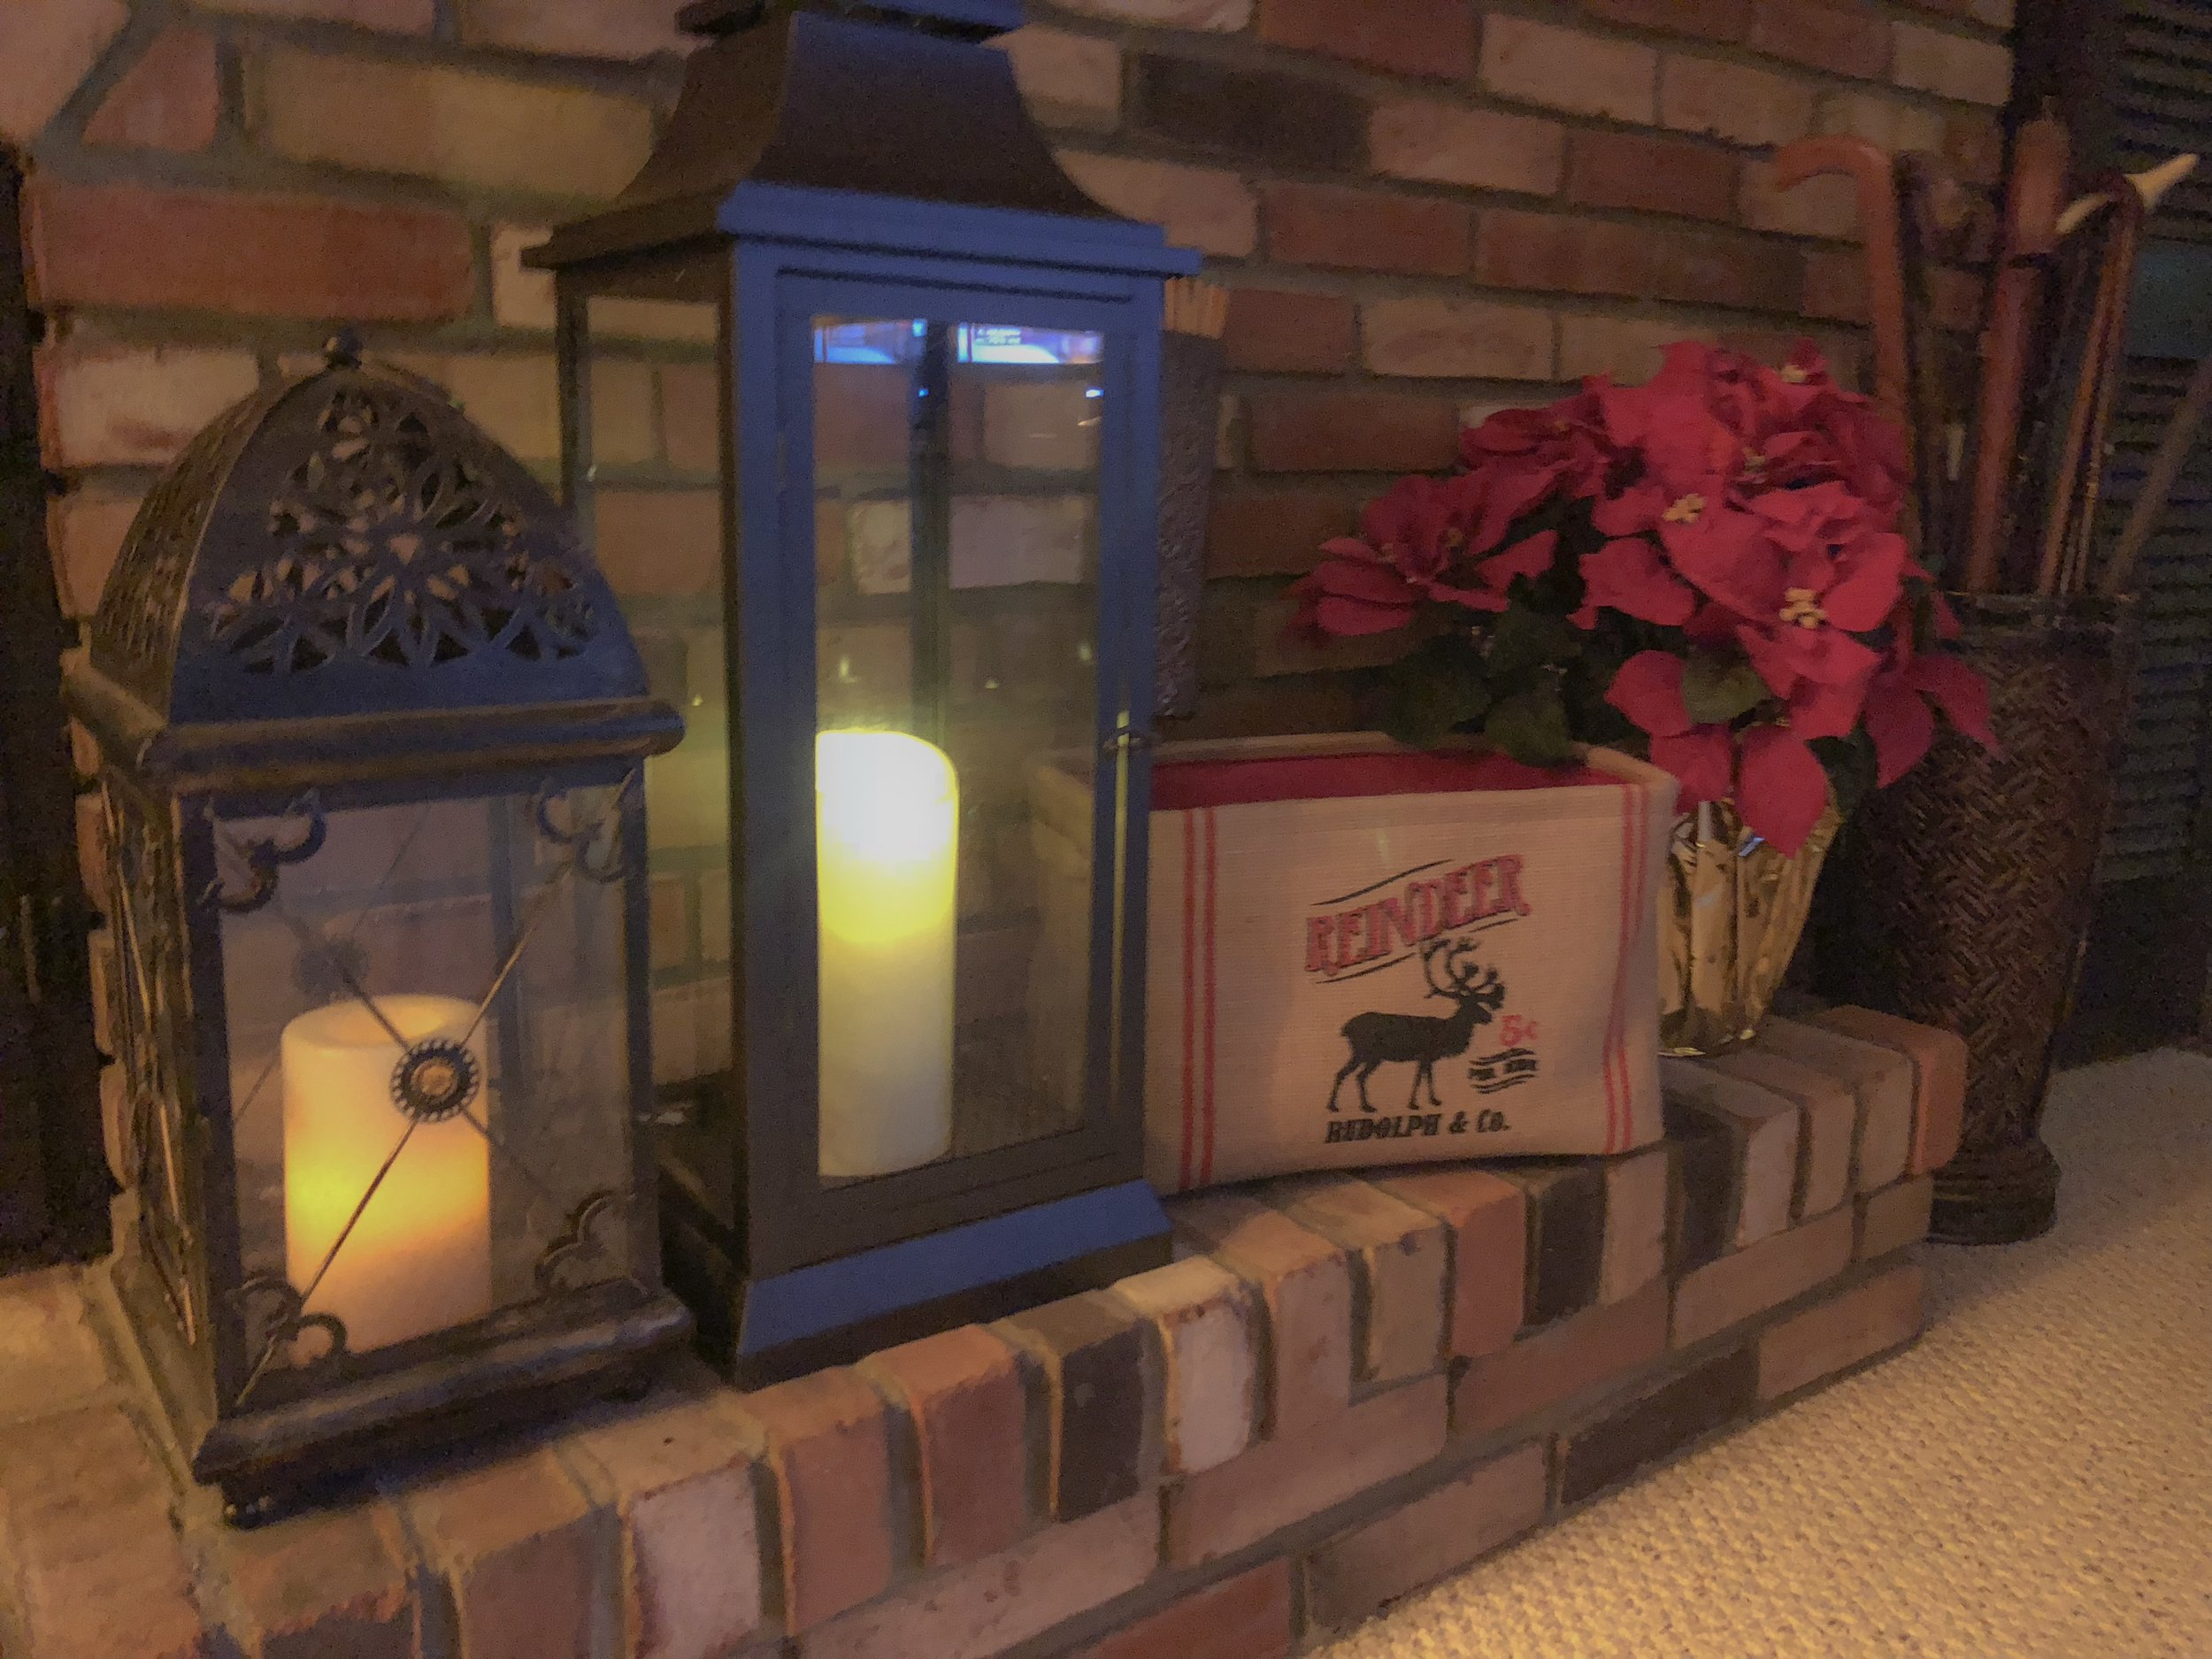 I love these fun burlap box I purchased from TJ Maxx last year. It's perfect on my fireplace, and I think the poinsettia adds the finishing touch.